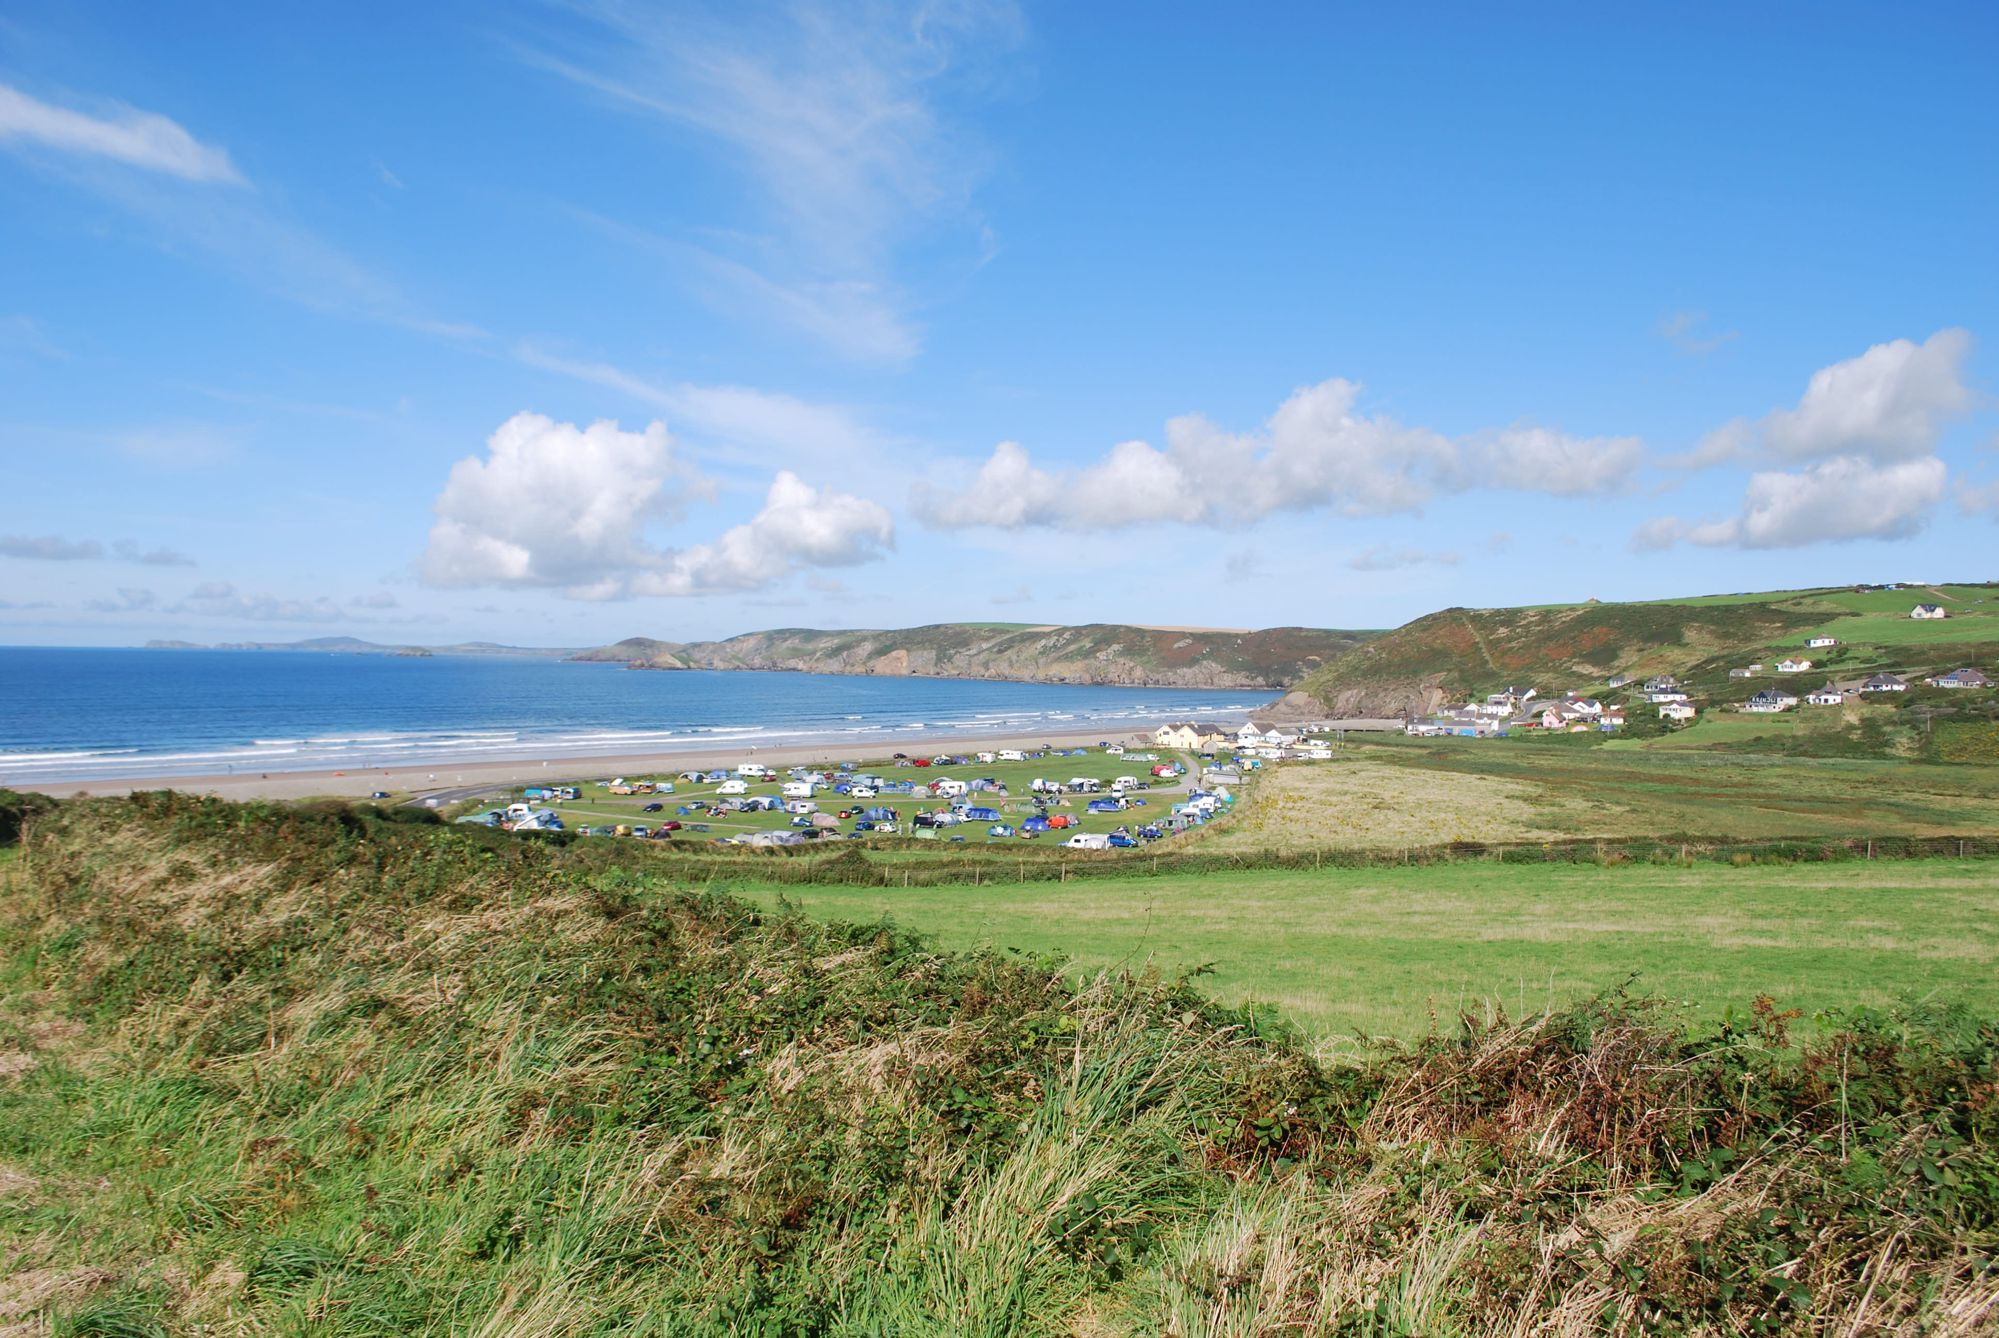 Camping next to one of Pembrokeshire's best surfing beaches.